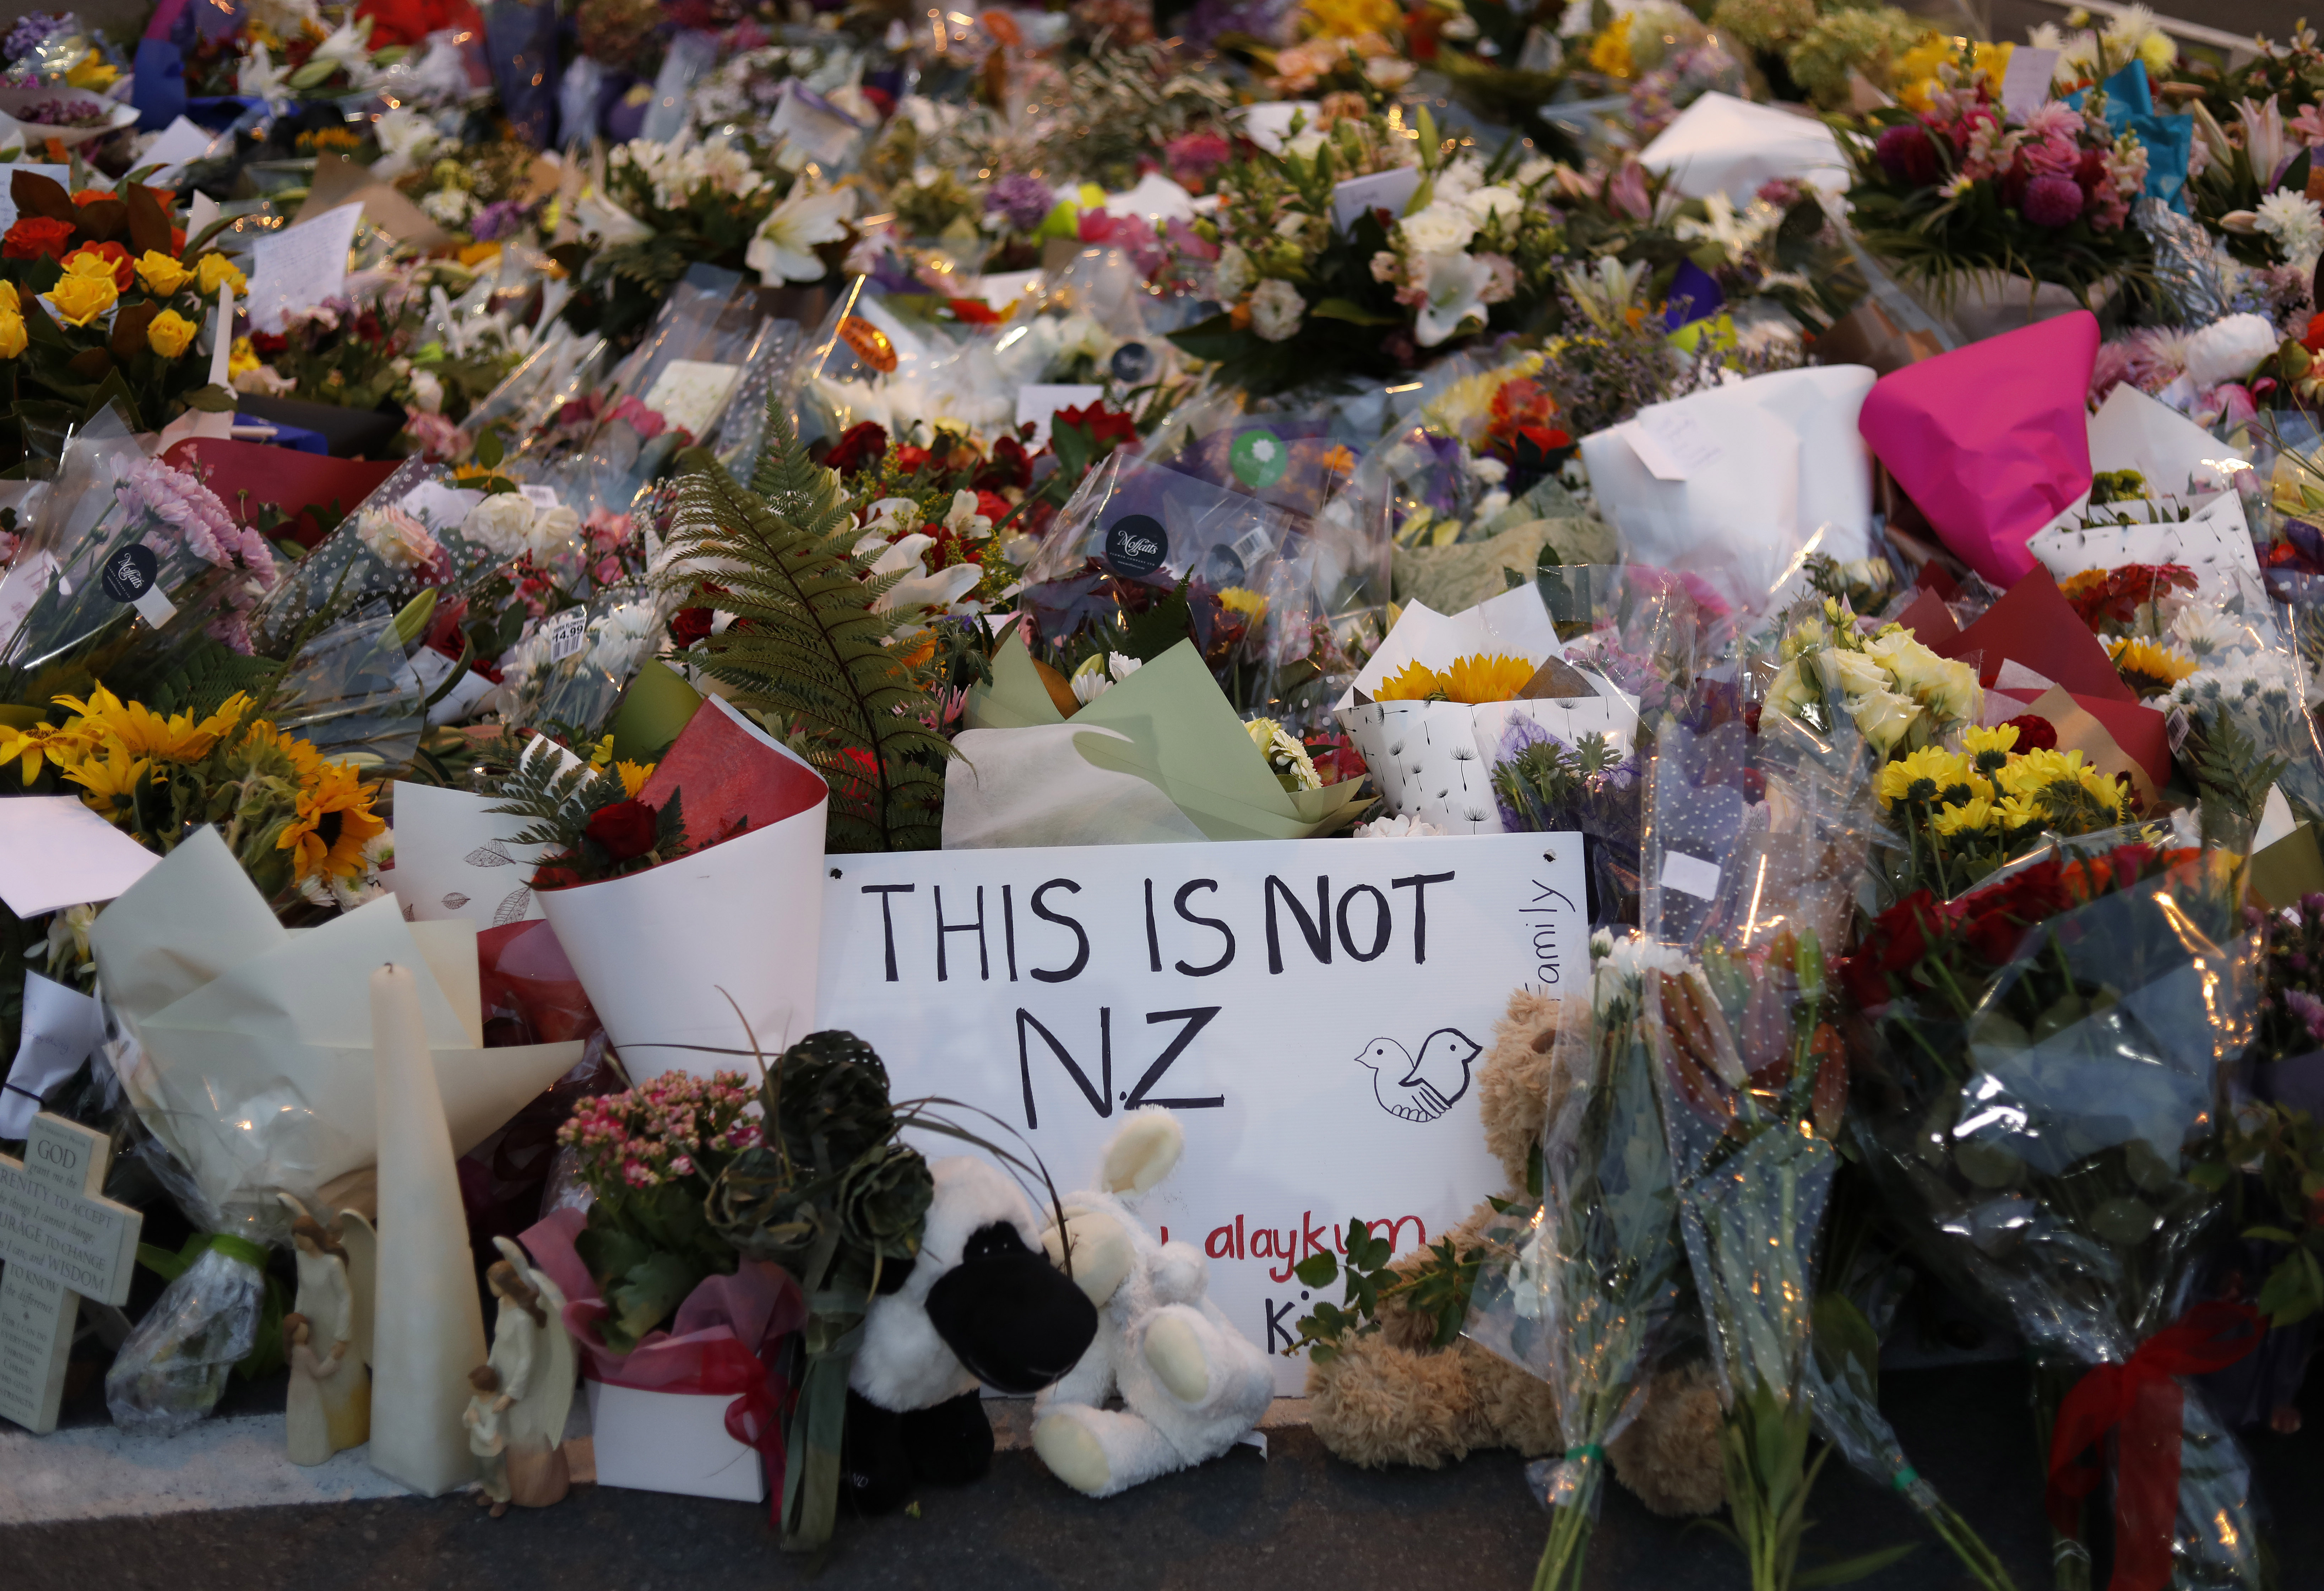 Tributes have been left at the scenes of the attack. Credit: PA